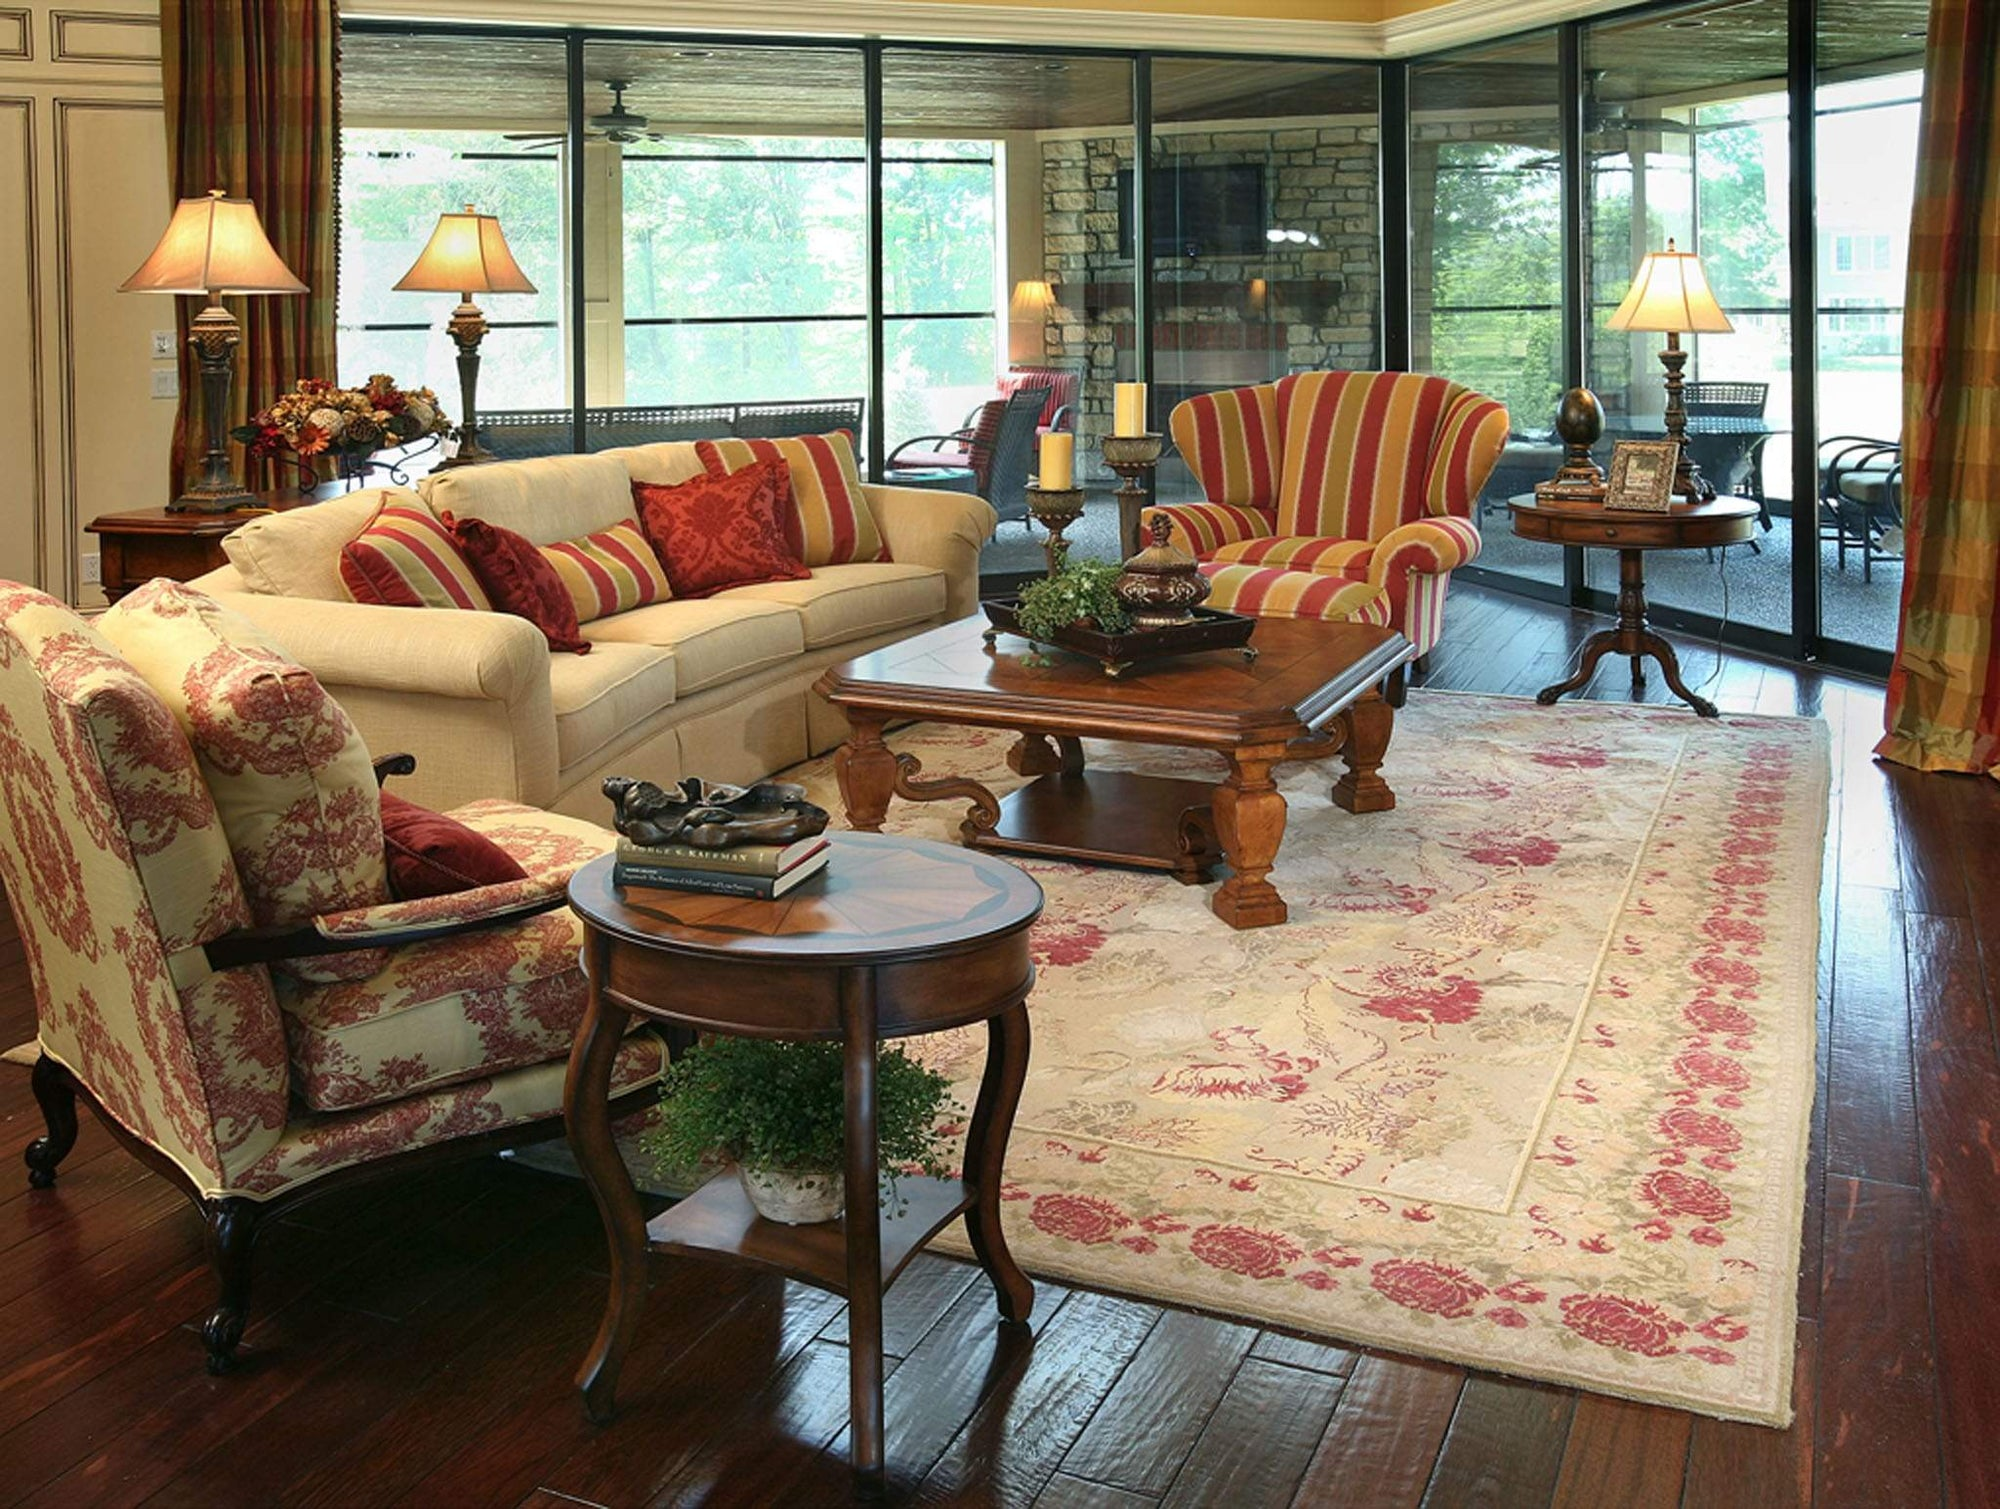 How Can You Tell if an Oriental Rug is High-End?